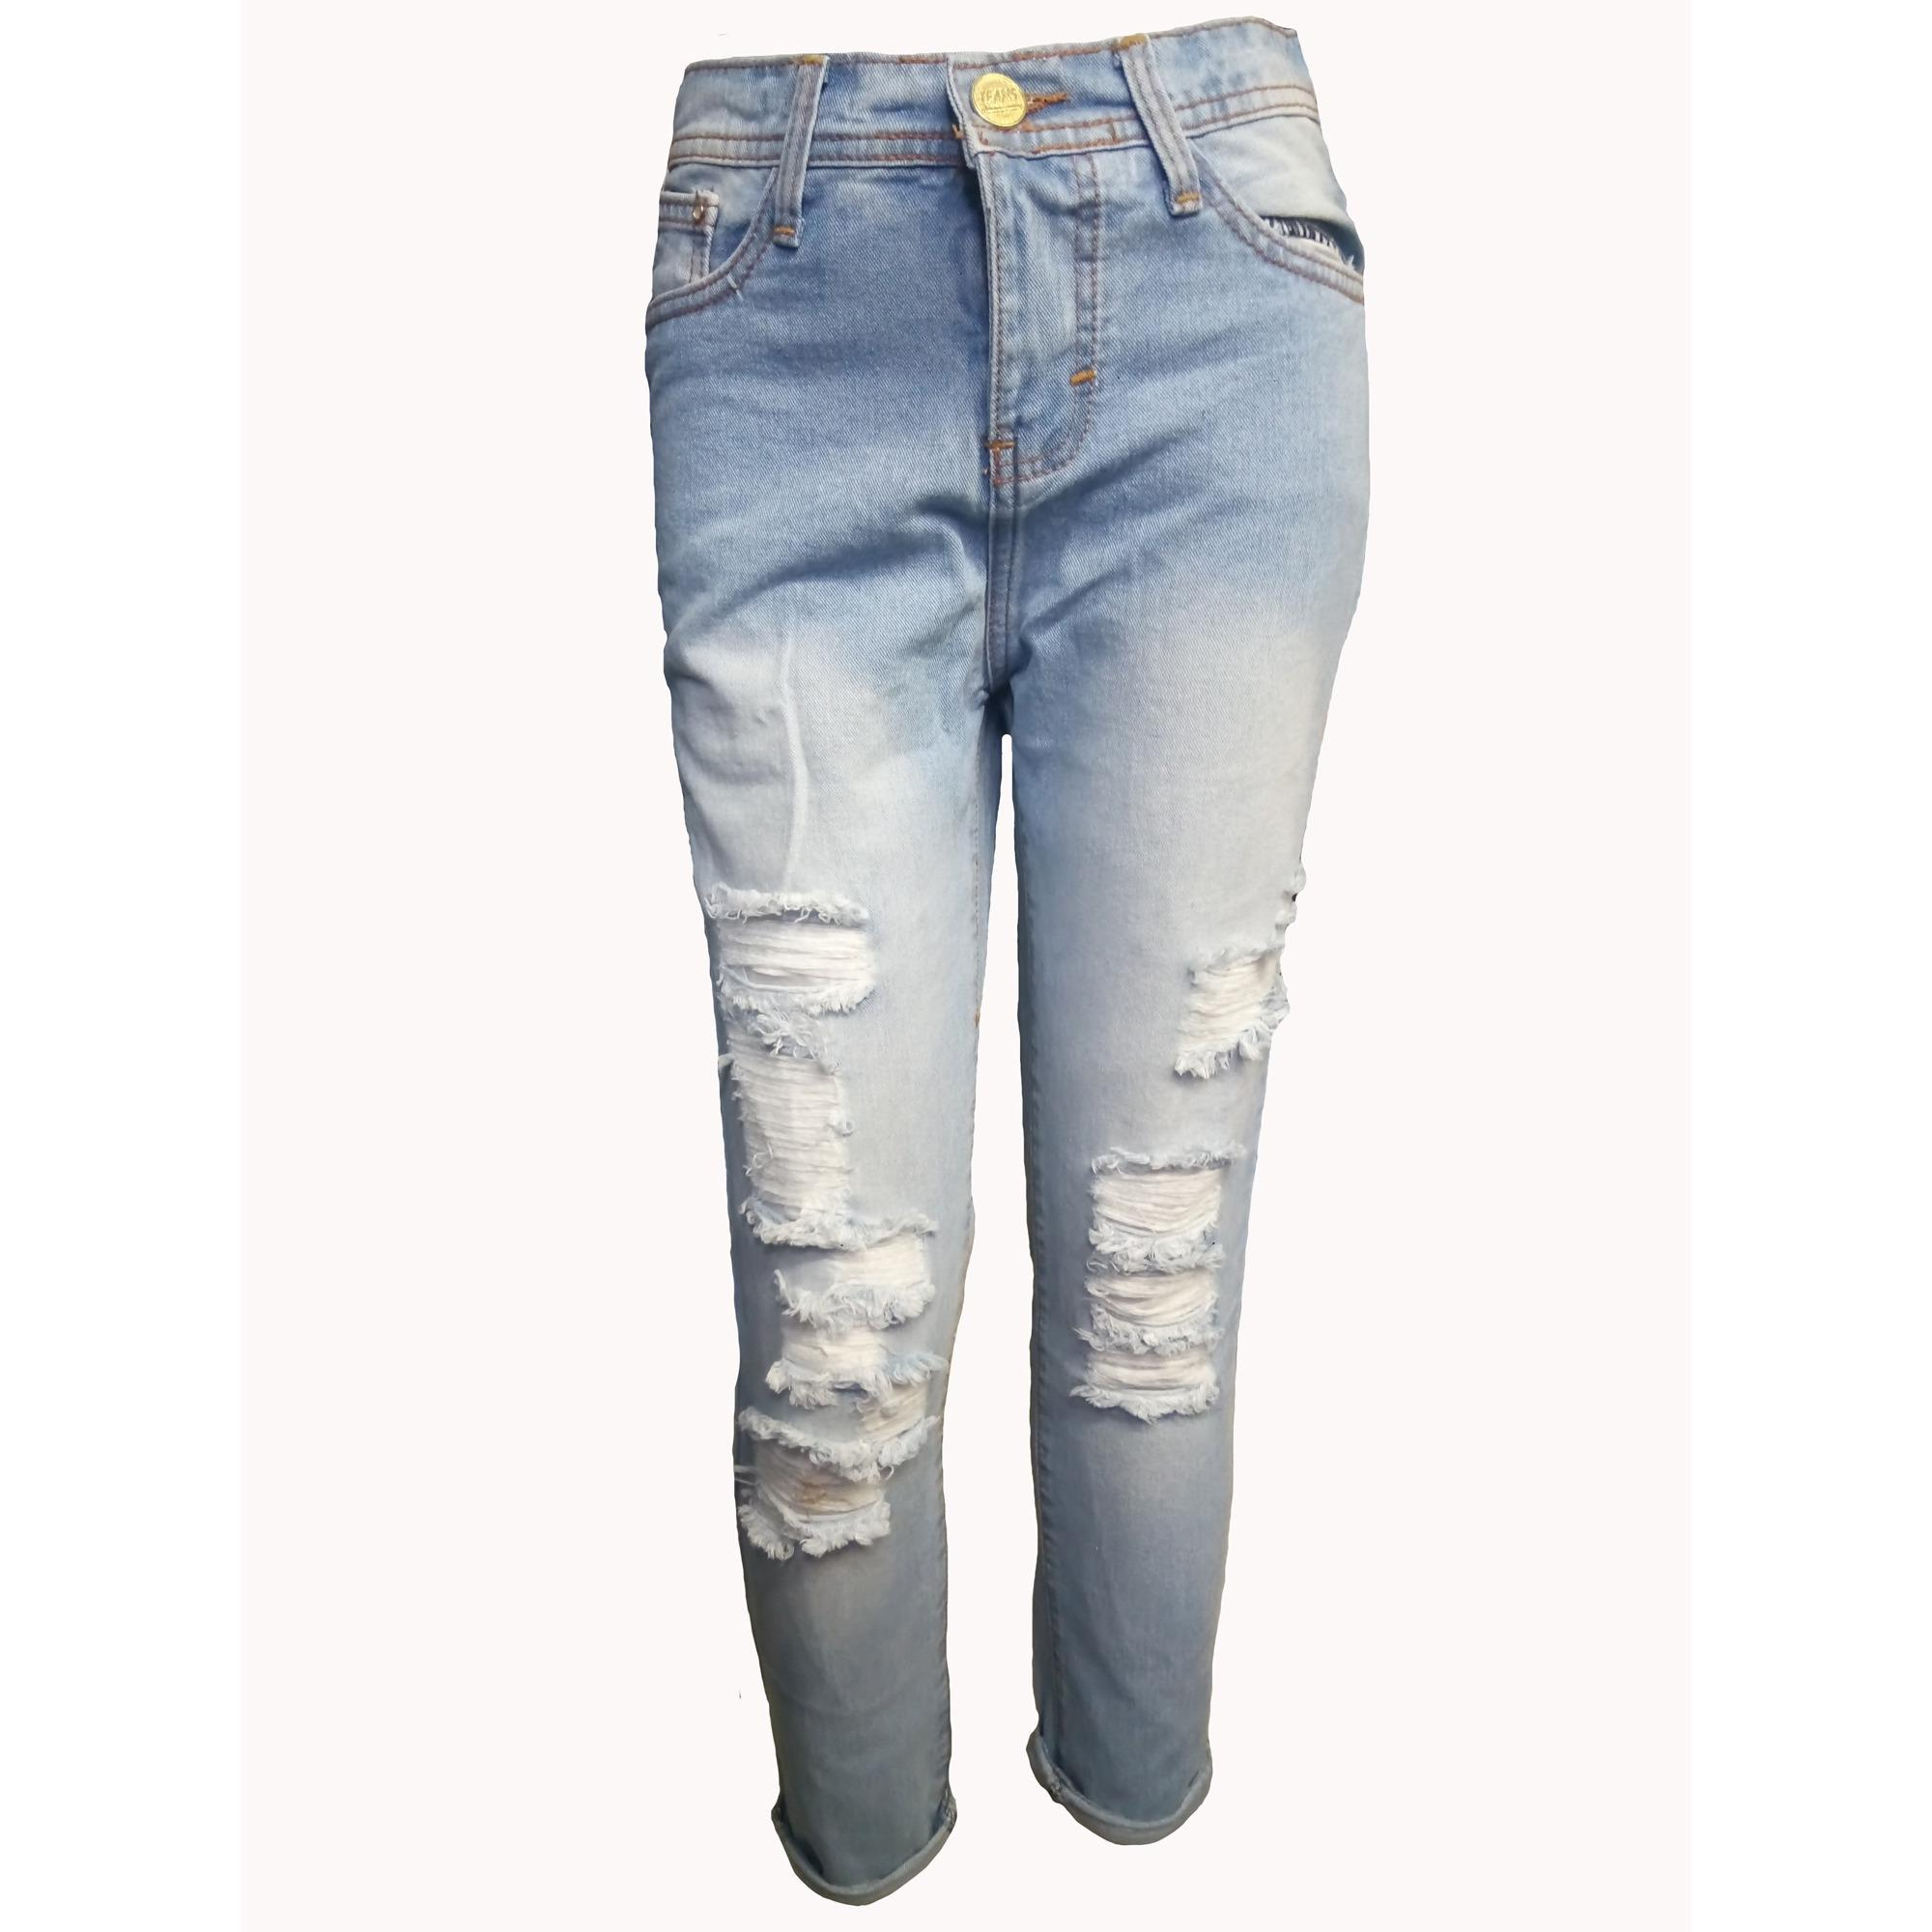 ZFJ Celana Jeans Wanita Terbaru High Quality Boyfriend Denim Sobek Tambal Puring Medium Blue 27